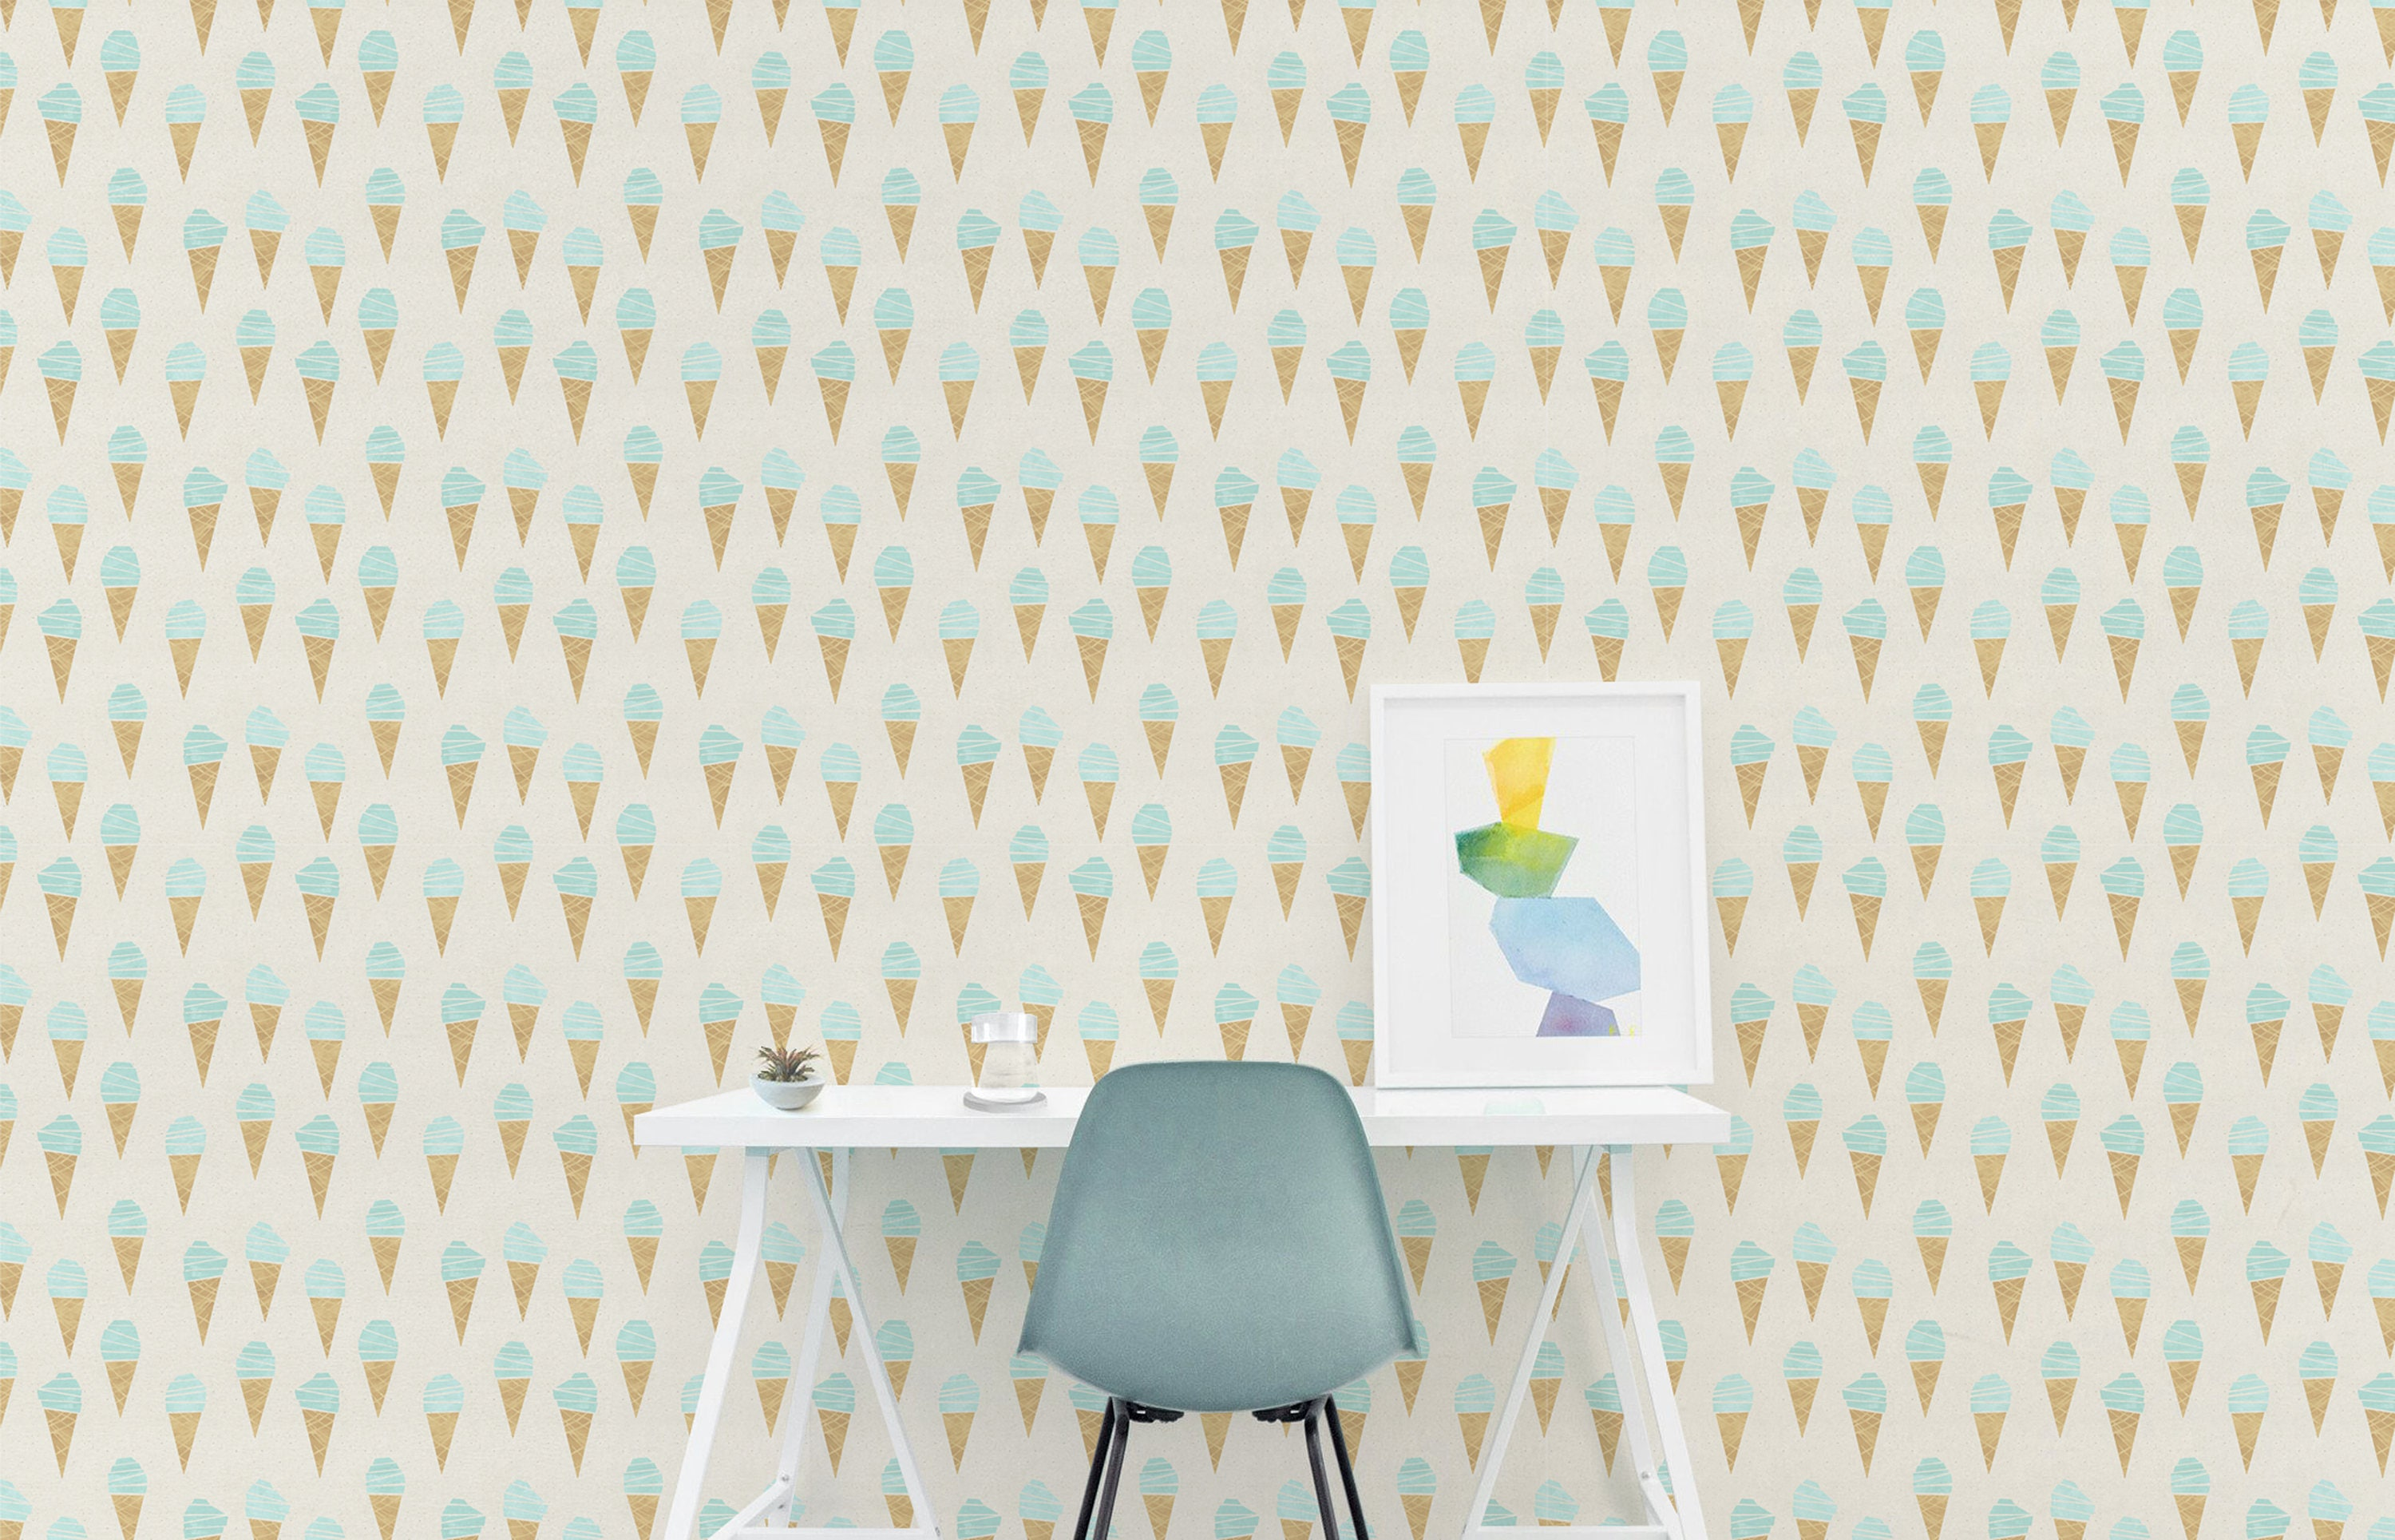 Ice Cream Wallpaper Removable Wall Decor Peel and Stick